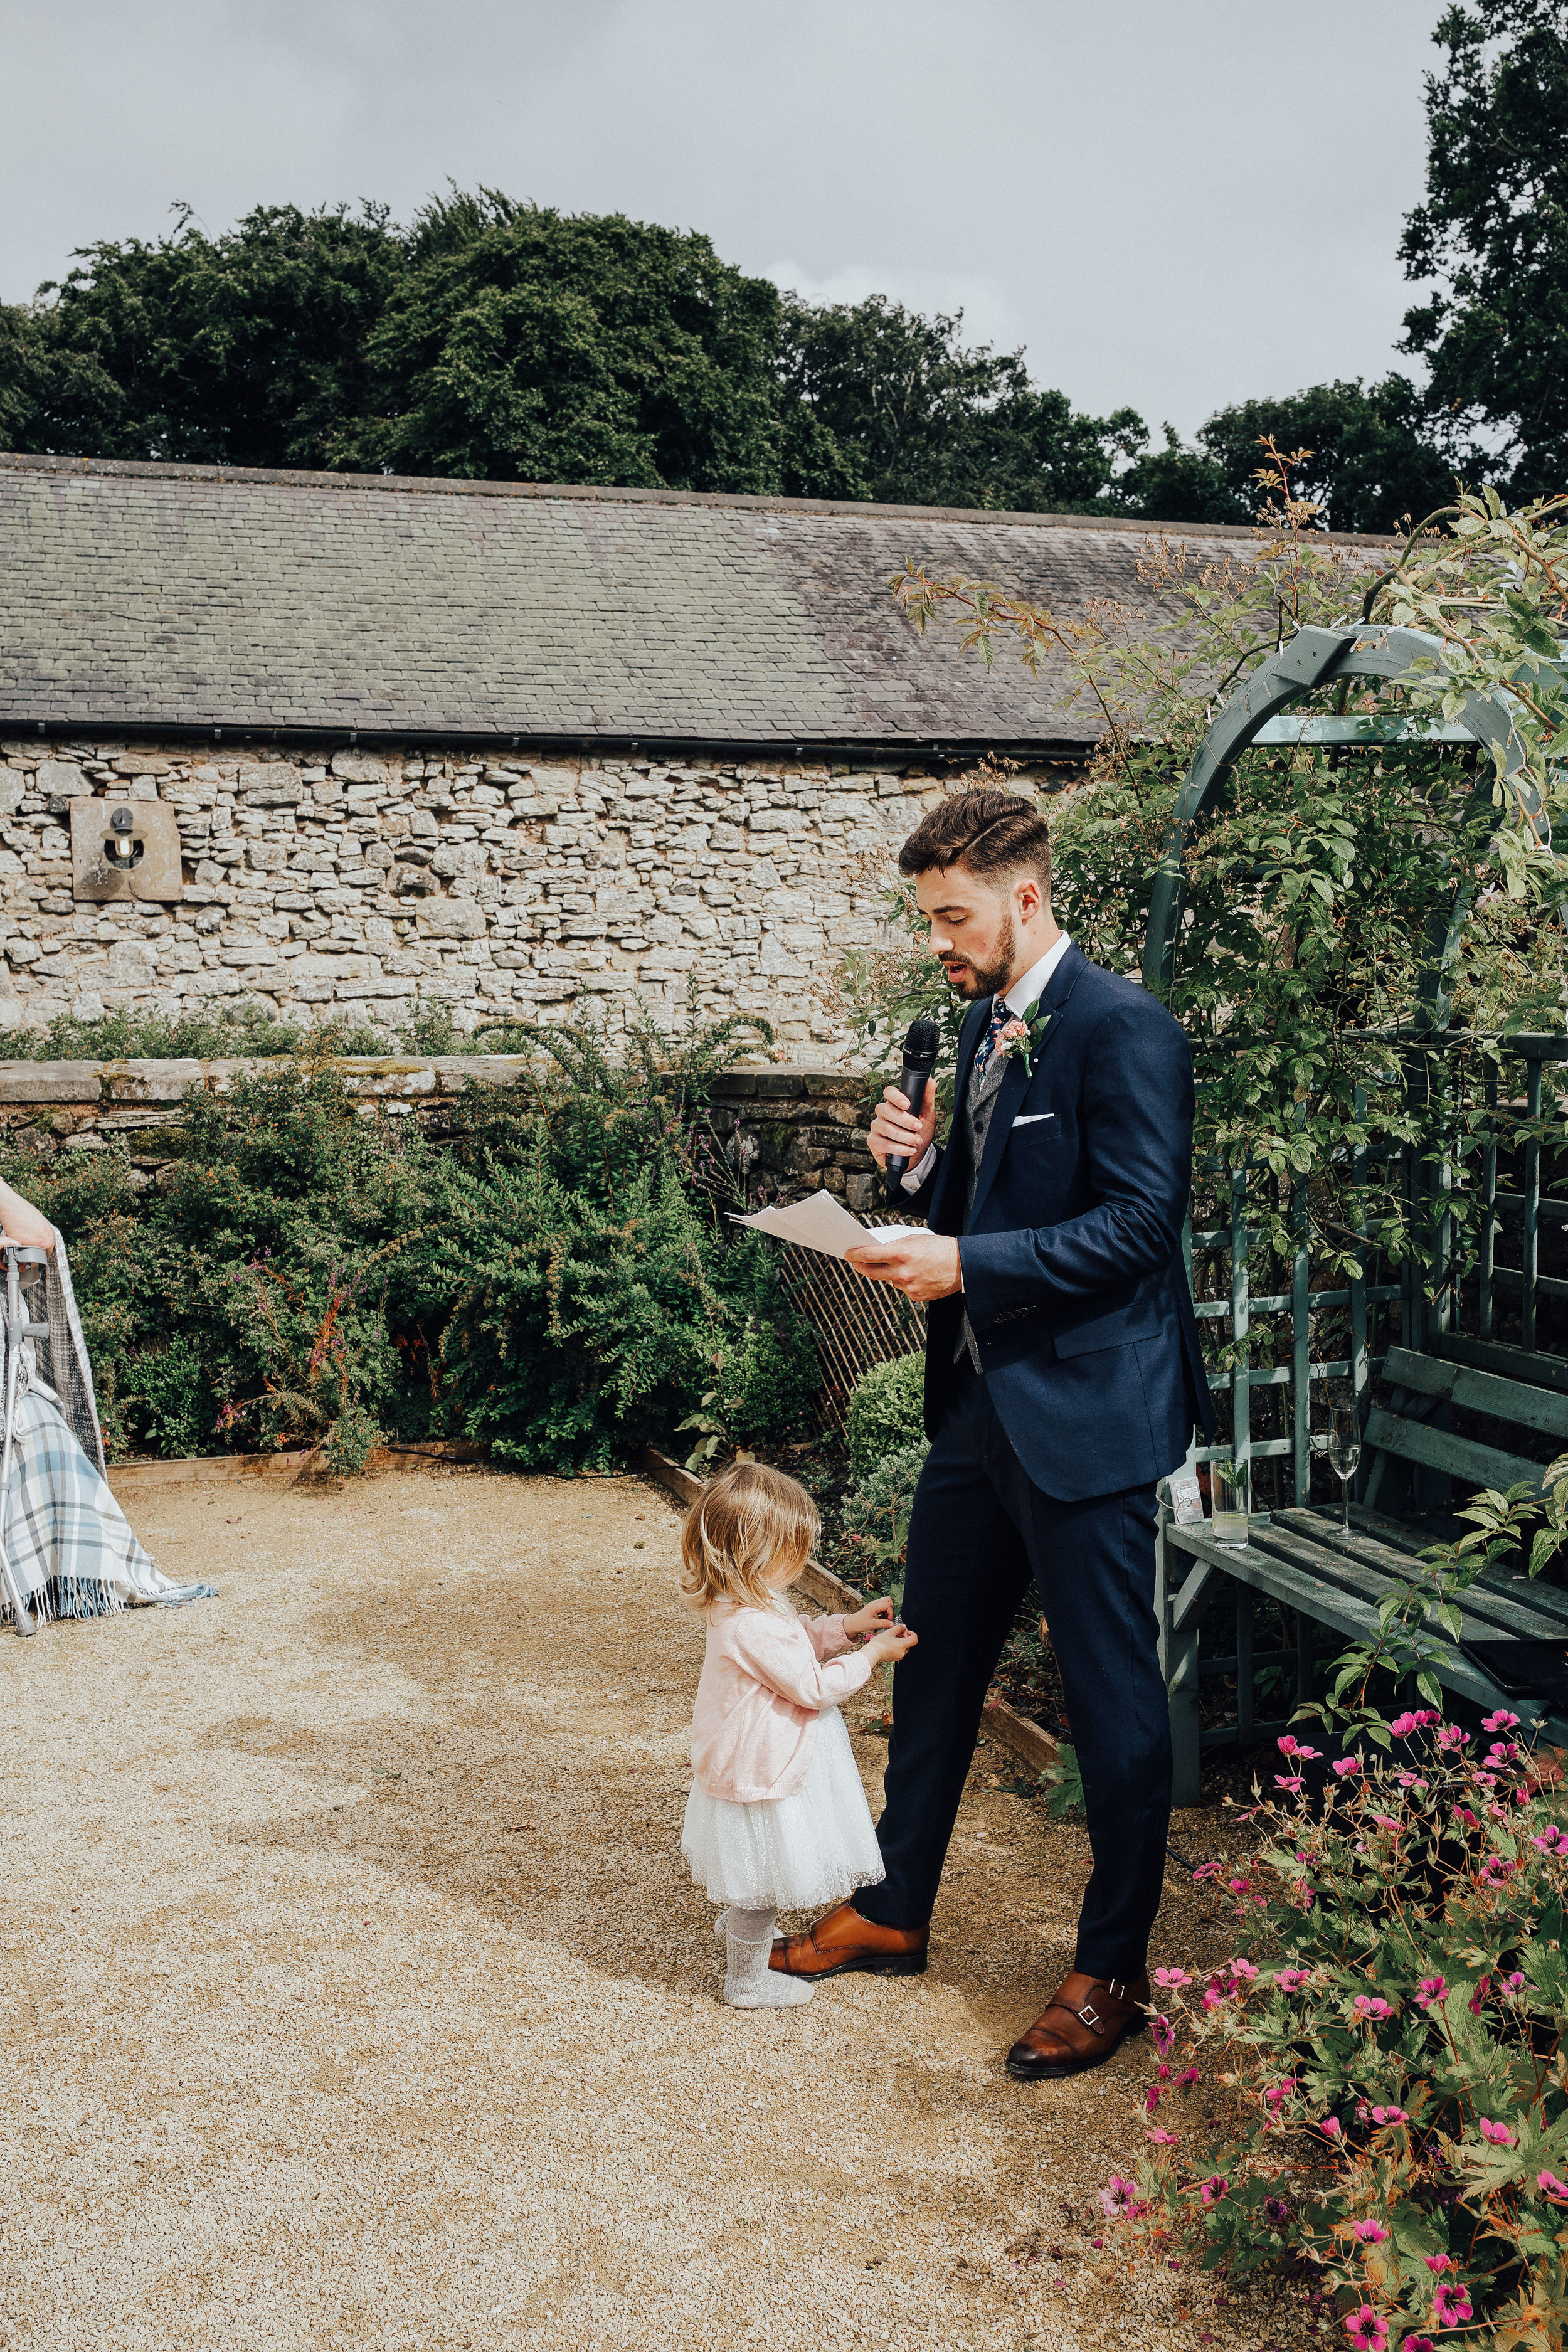 PJ_PHILLIPS_PHOTOGRAPHY_EDINBURGH_WEDDERBURN_BARNS_WEDDING_EDINBURGH_WEDDING_PHOTOGRAPHER_119.jpg